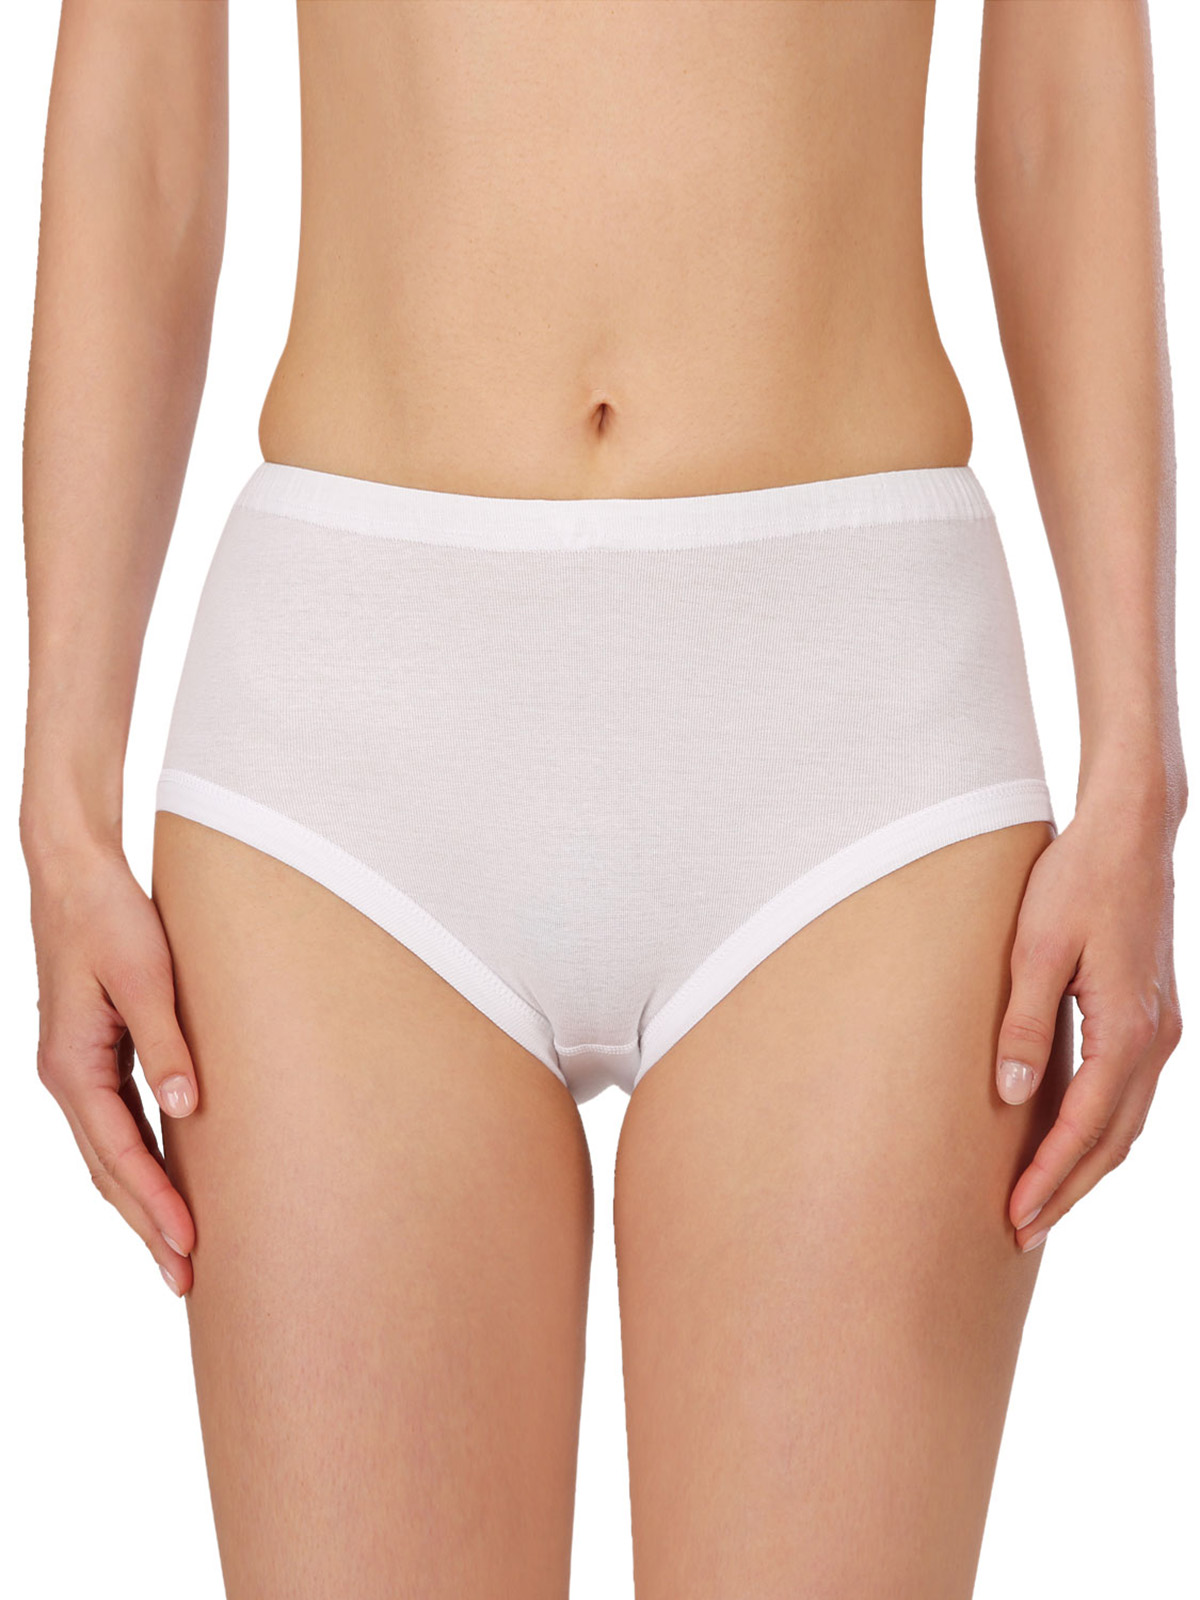 Naturana Pack of 5 Women's Briefs 802202